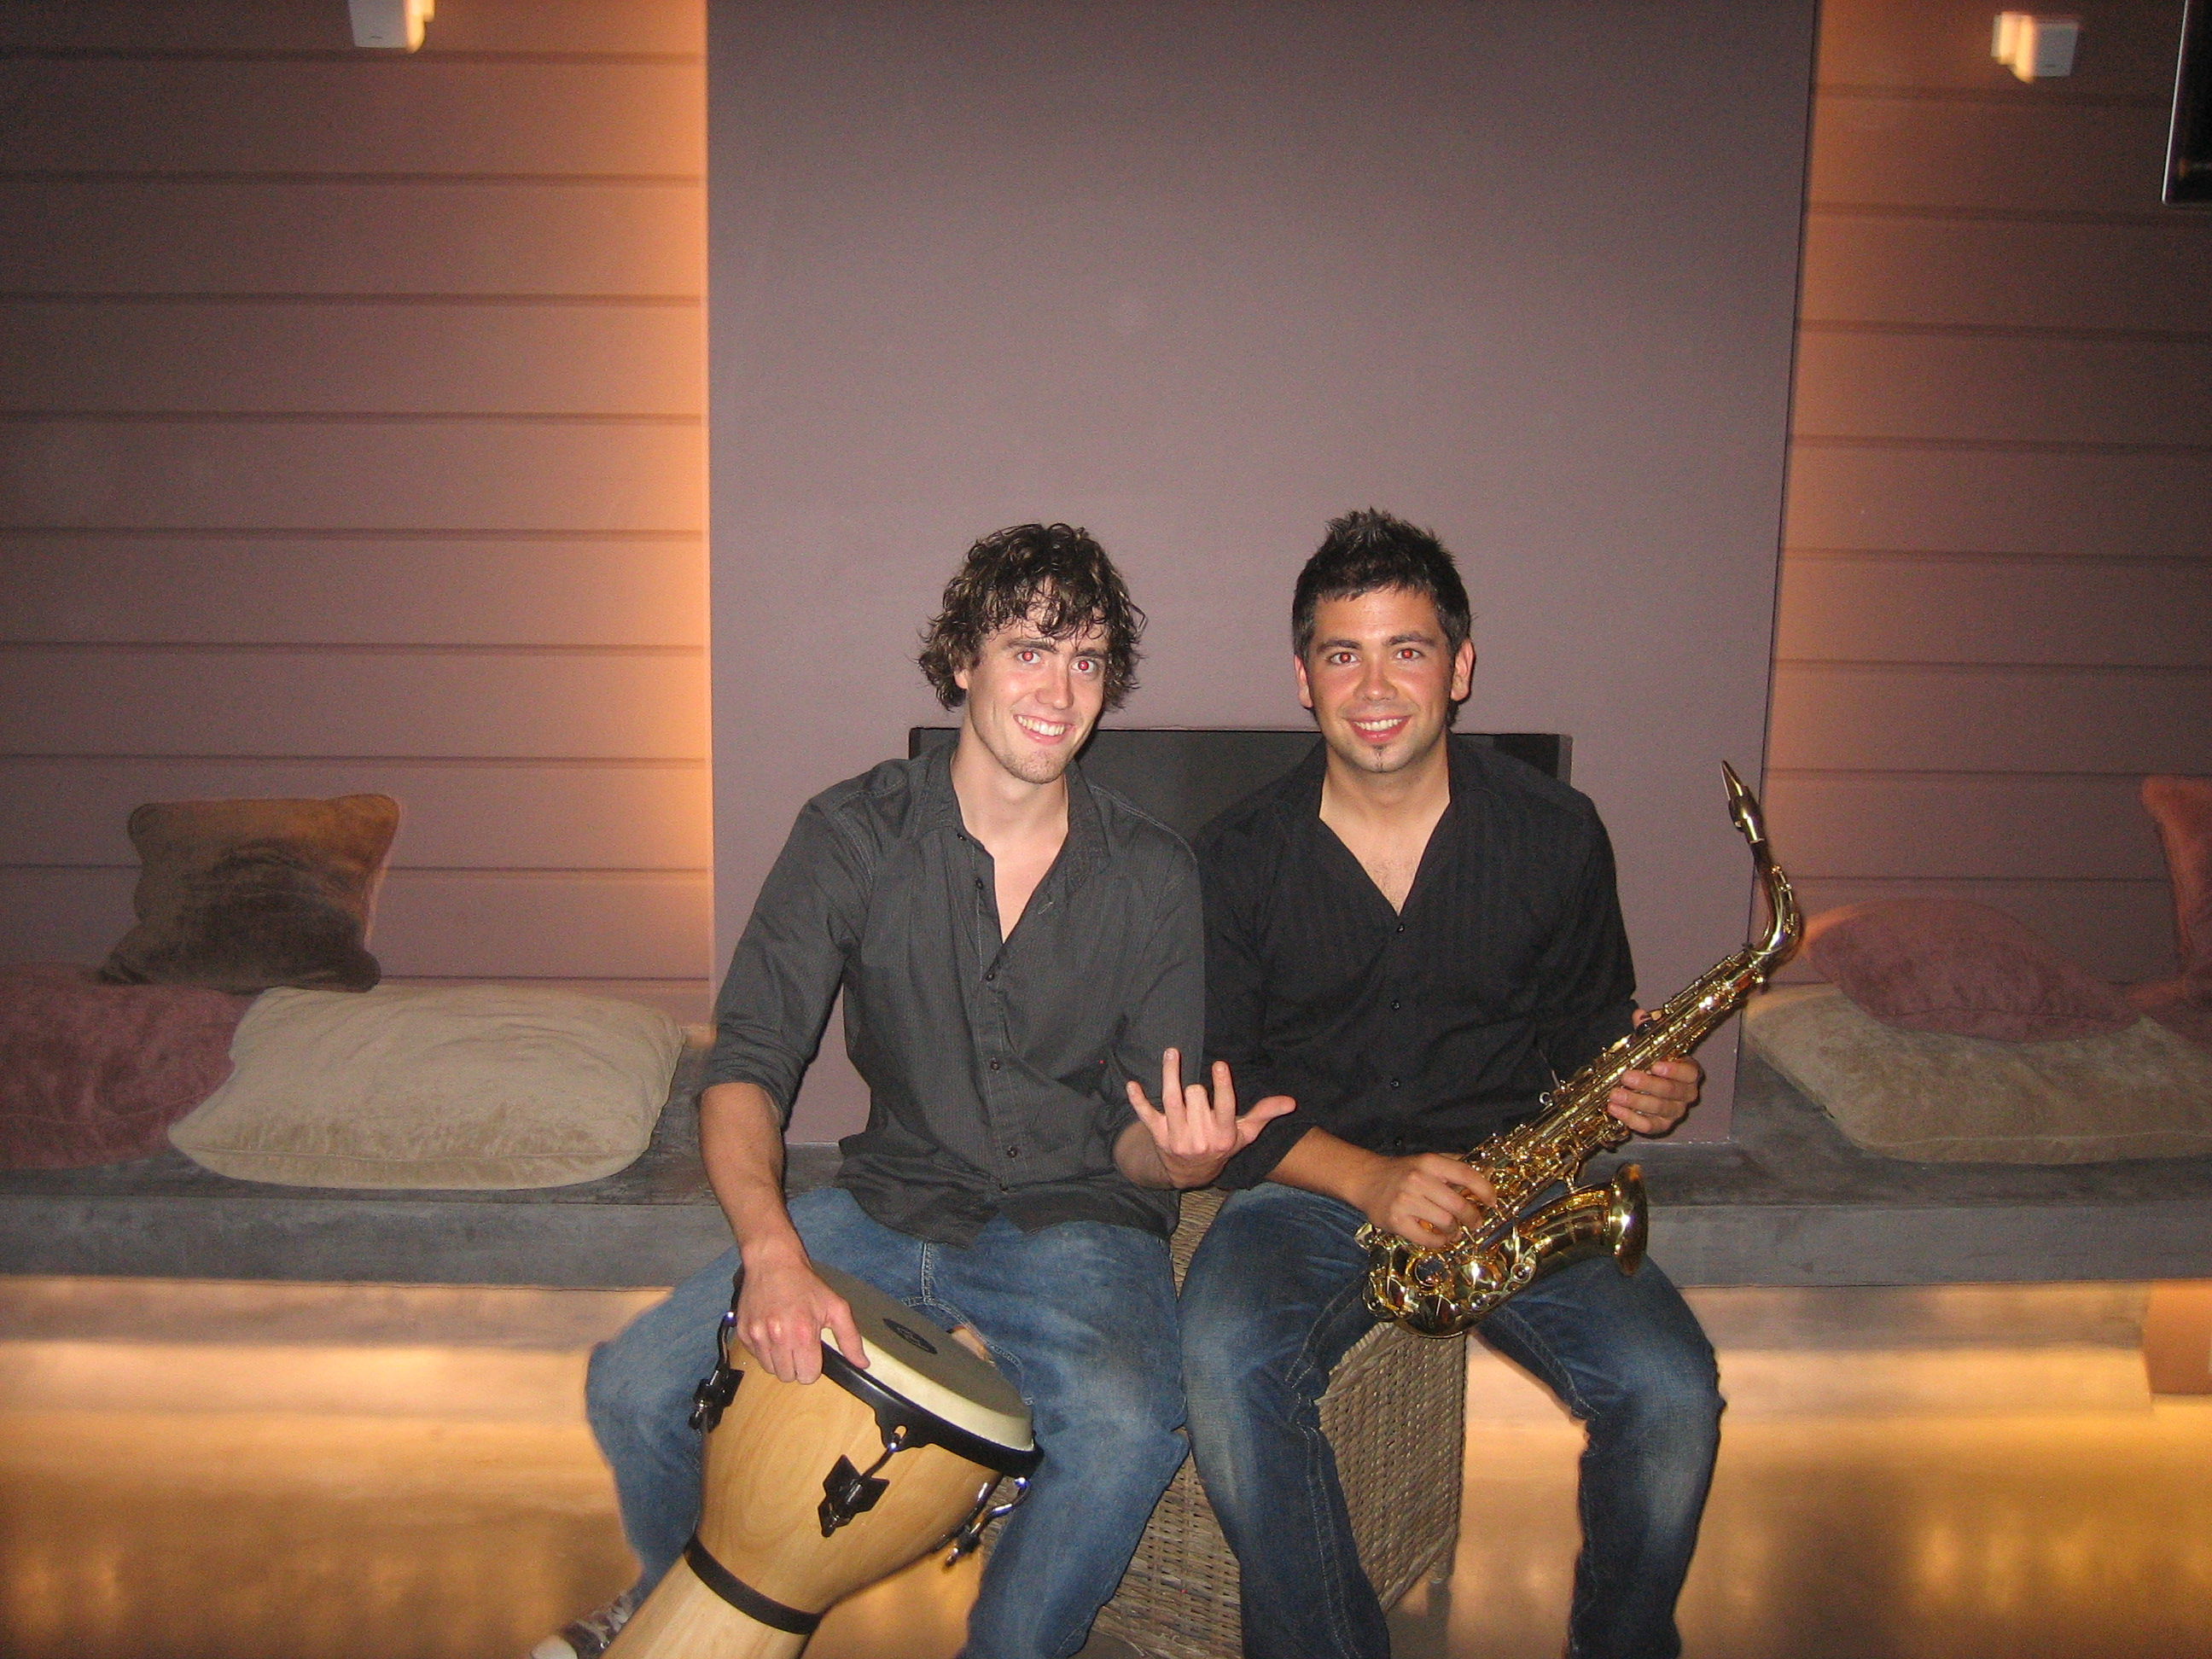 Djembe and sax